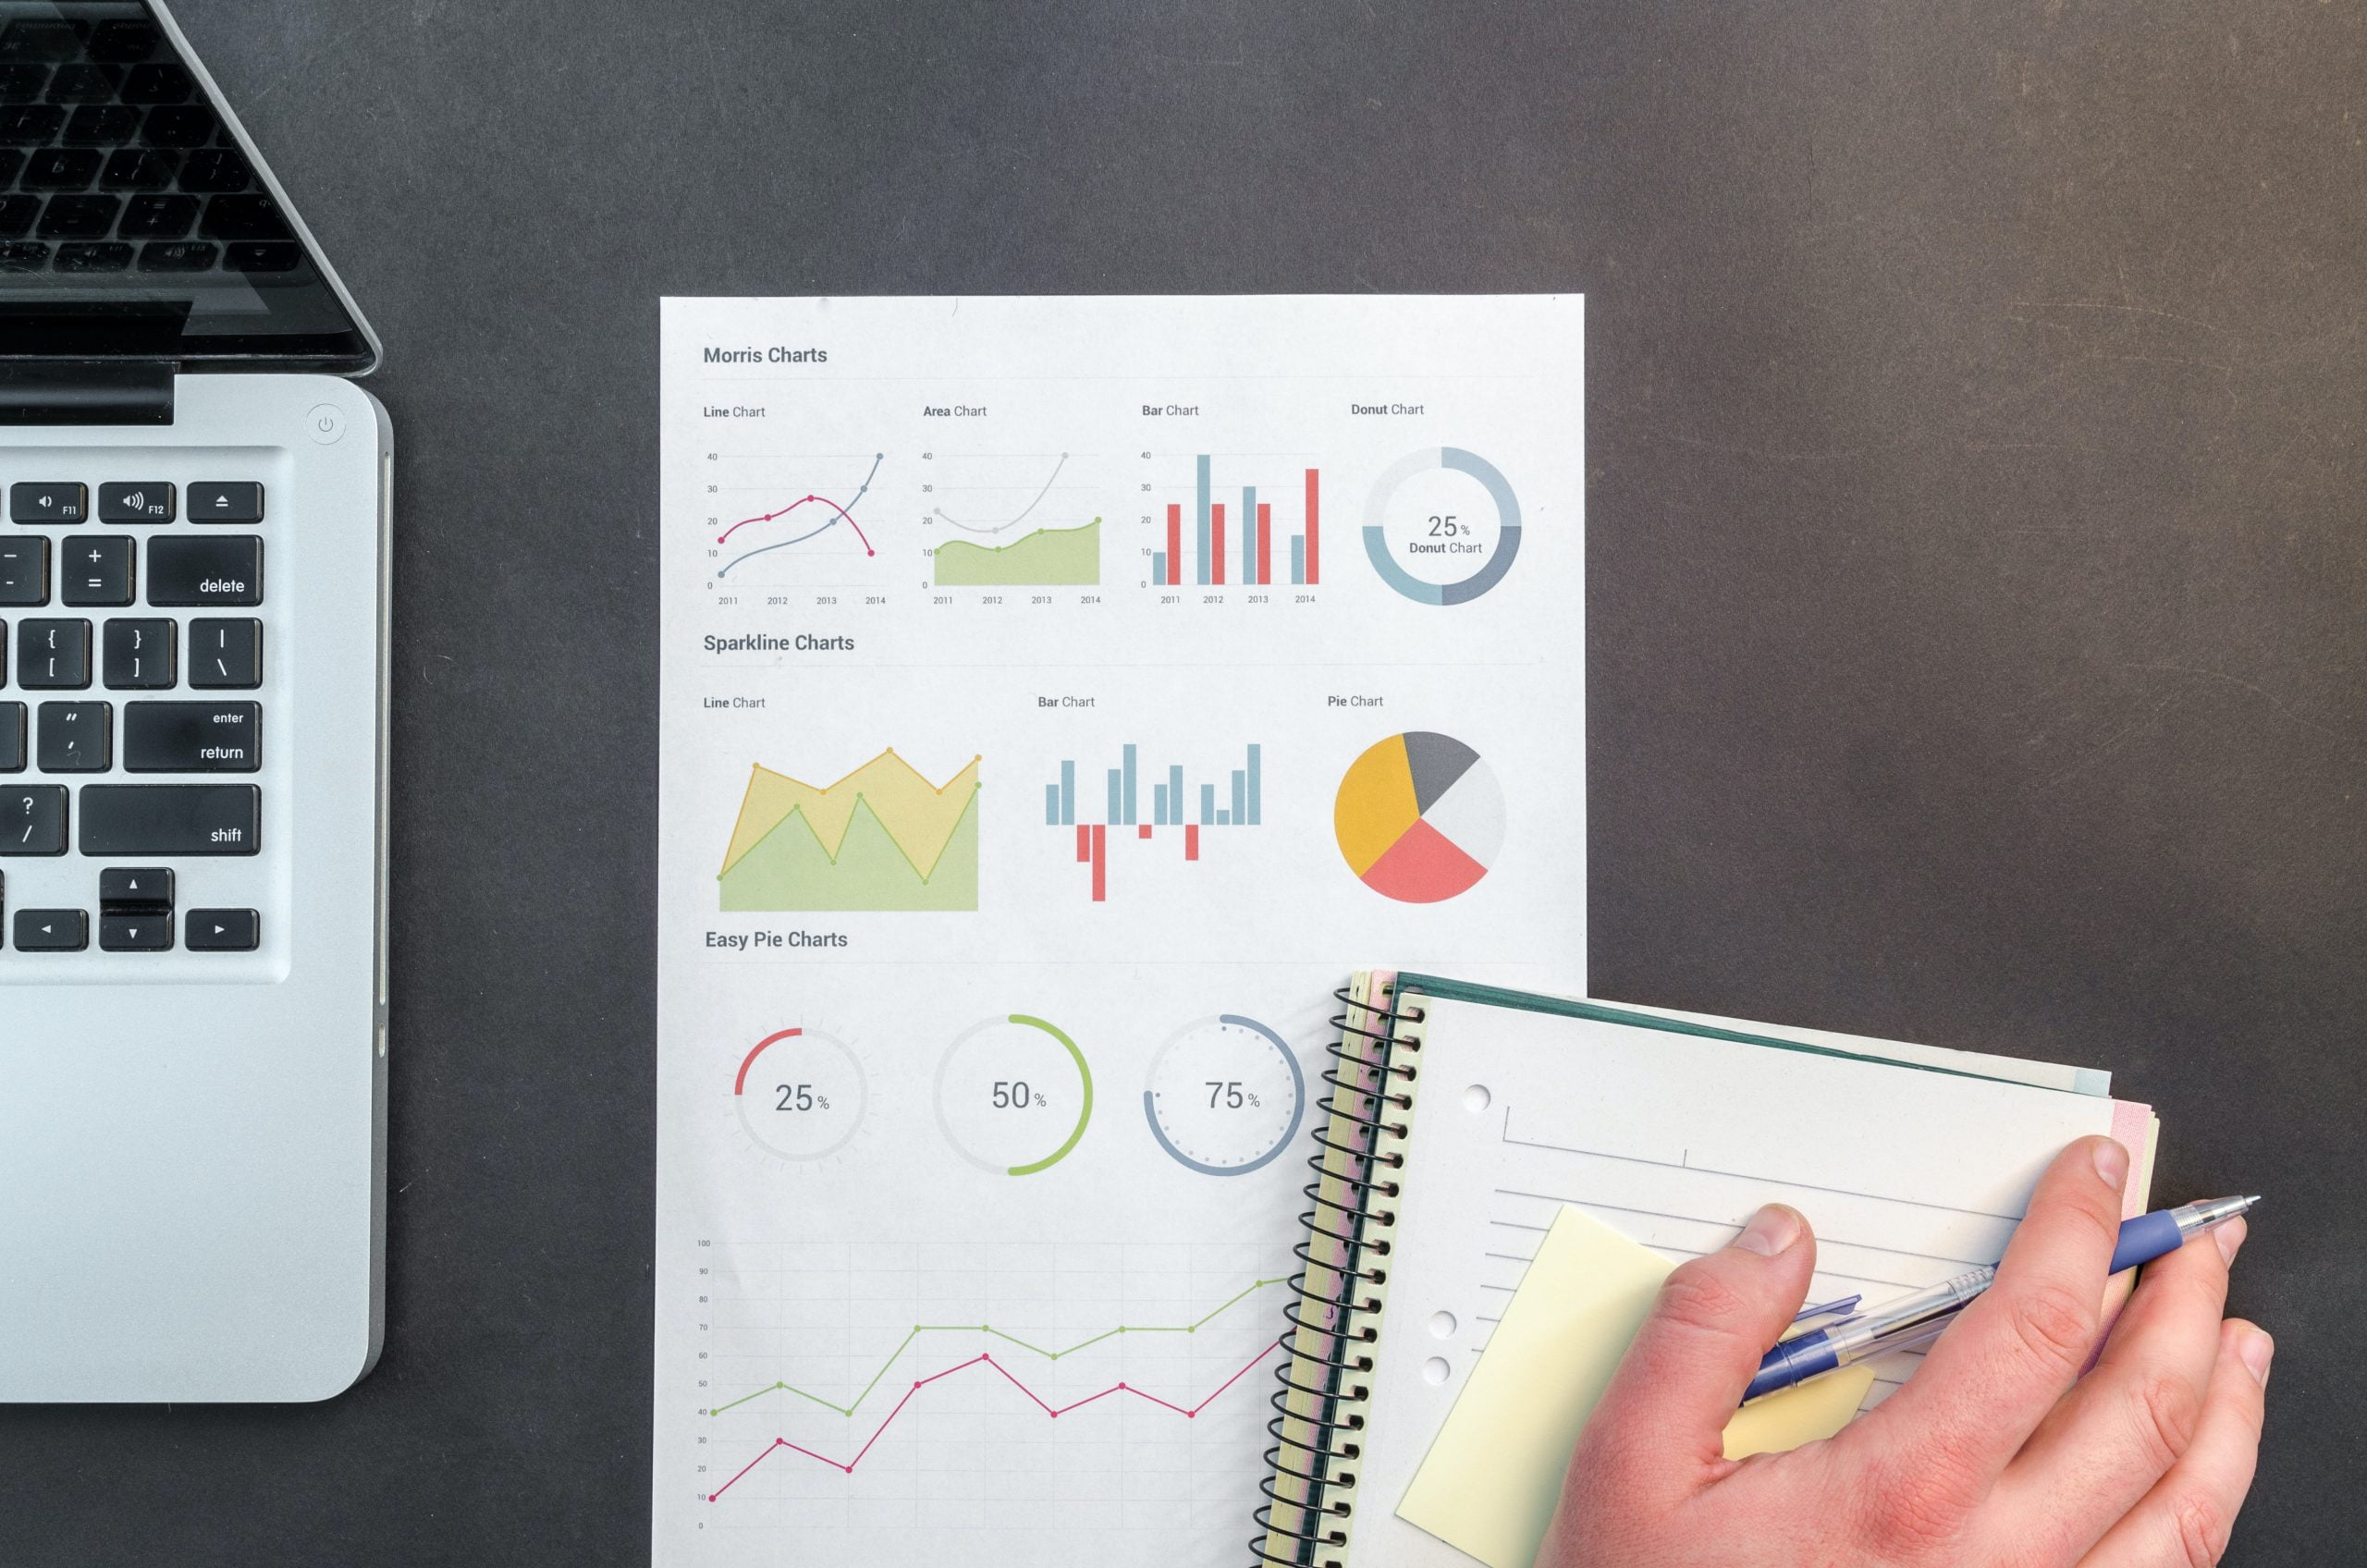 Using Data to Make Real-Time Marketing Decisions